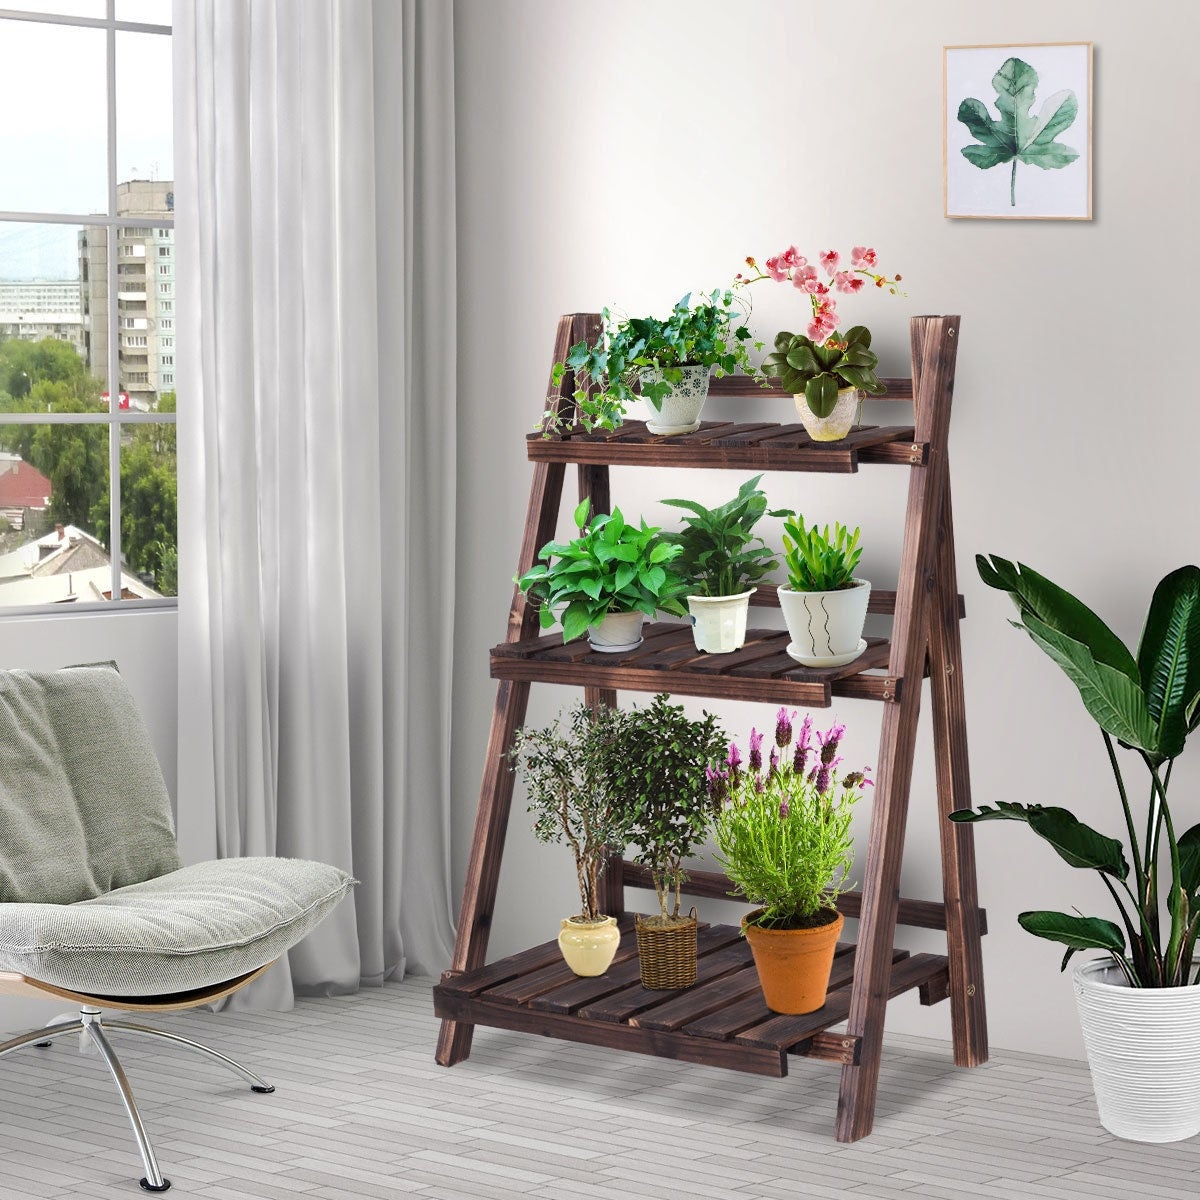 12b239f9158e Buy Wood Planters & Plant Stands Online at Overstock | Our Best Outdoor  Decor Deals